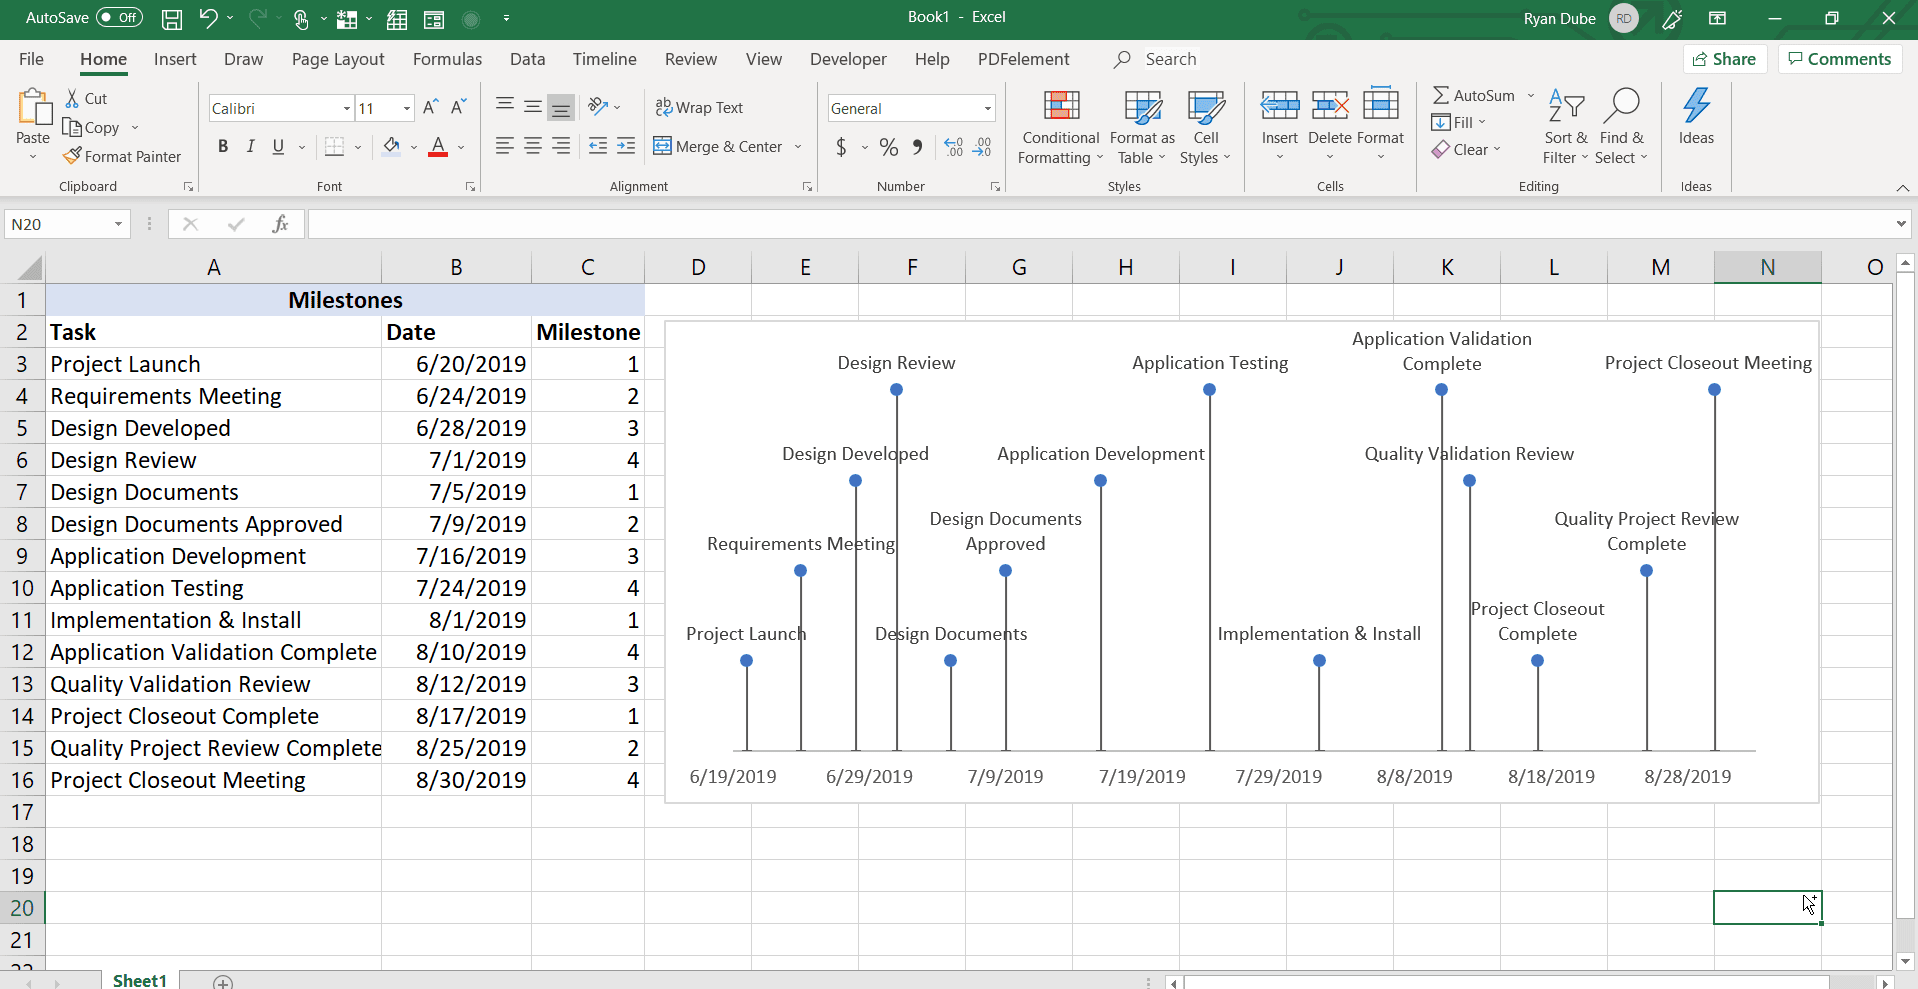 Screenshot of a completed timeline in Excel